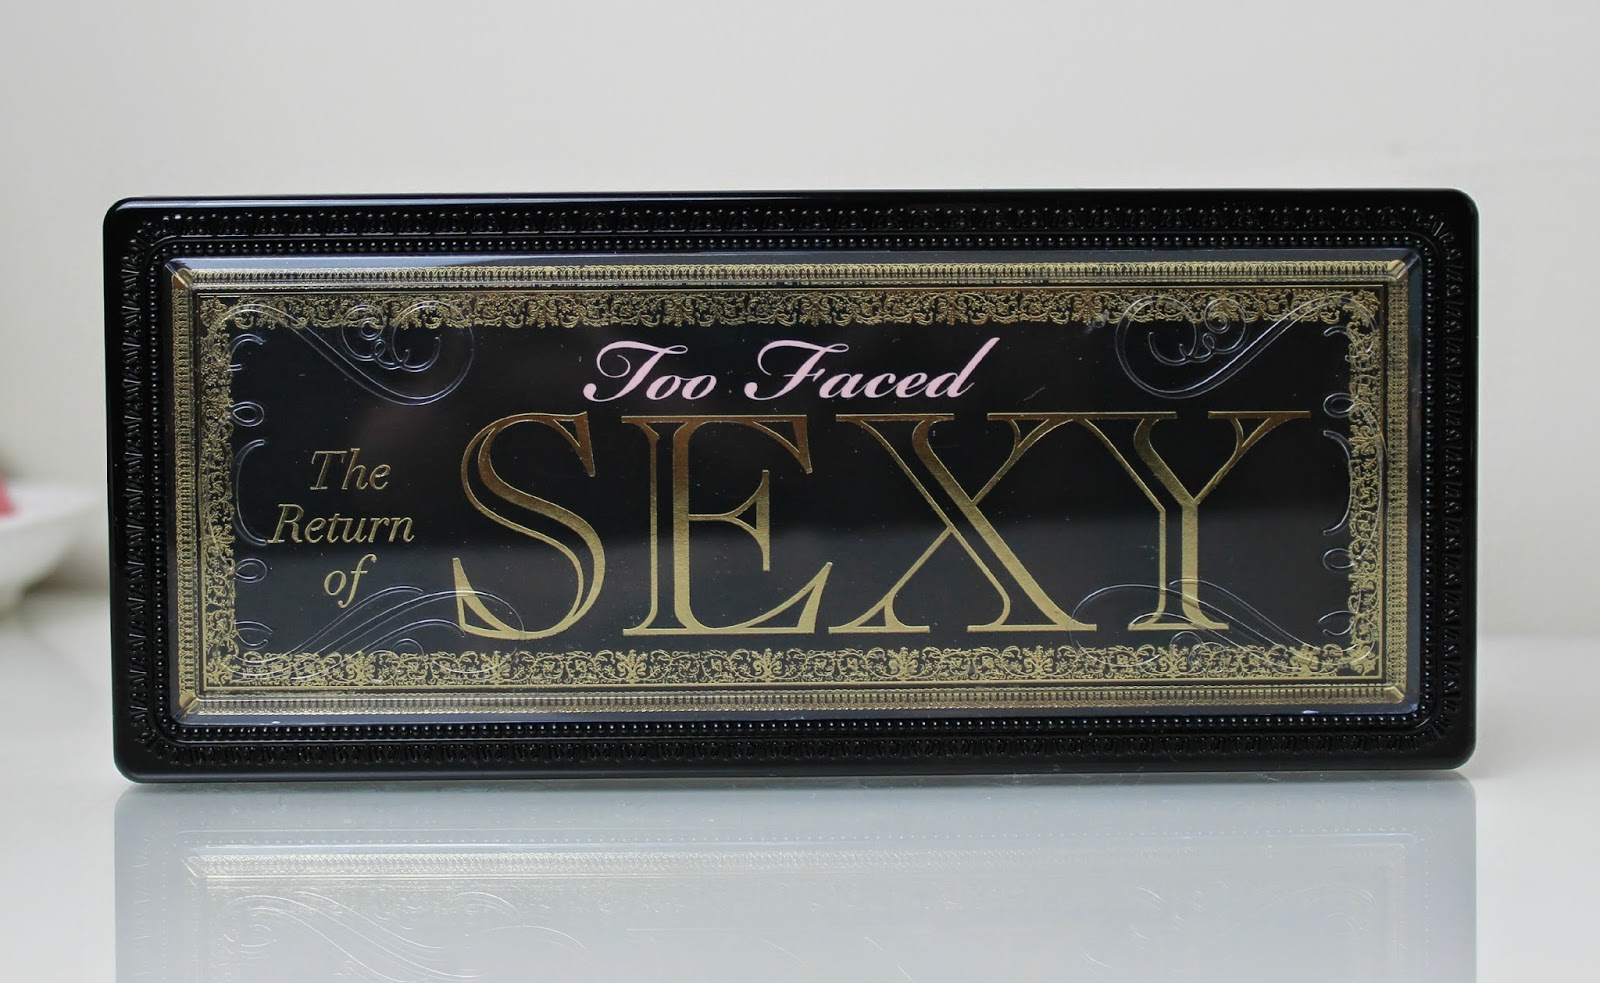 Too Faced The Return of Sexy 15 shade eyeshadow palette